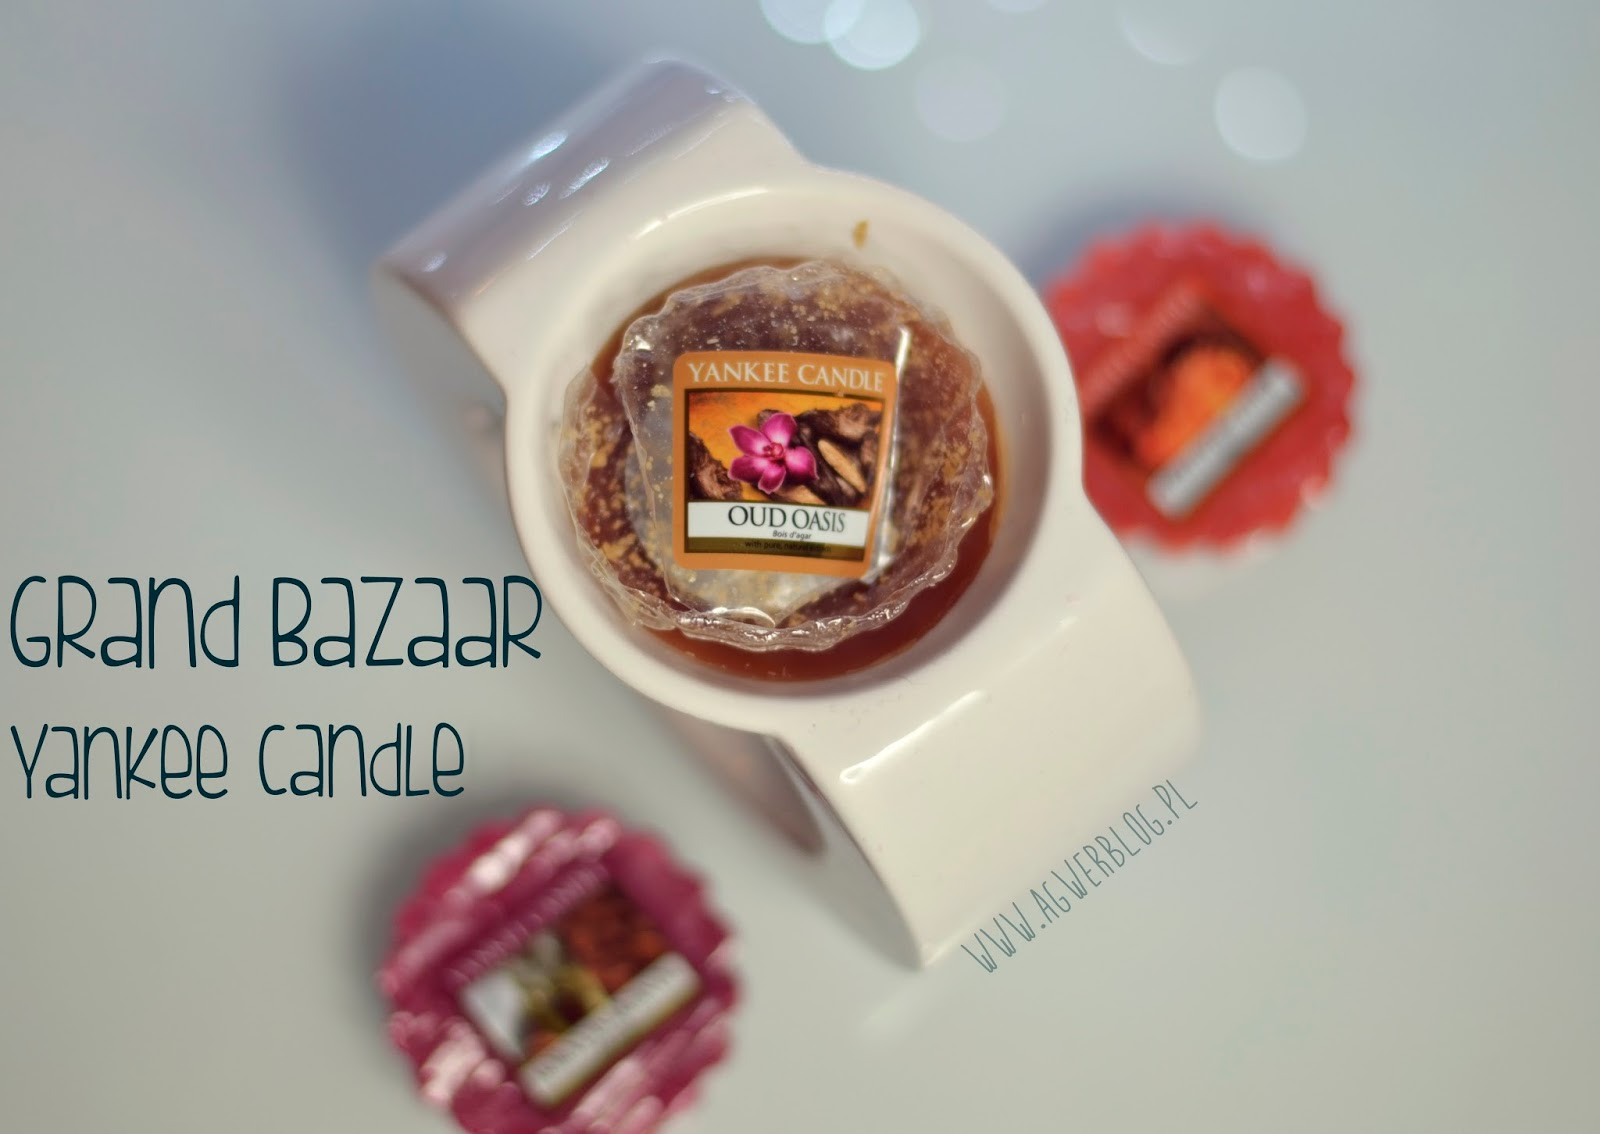 grand-bazaar-yankee-candle